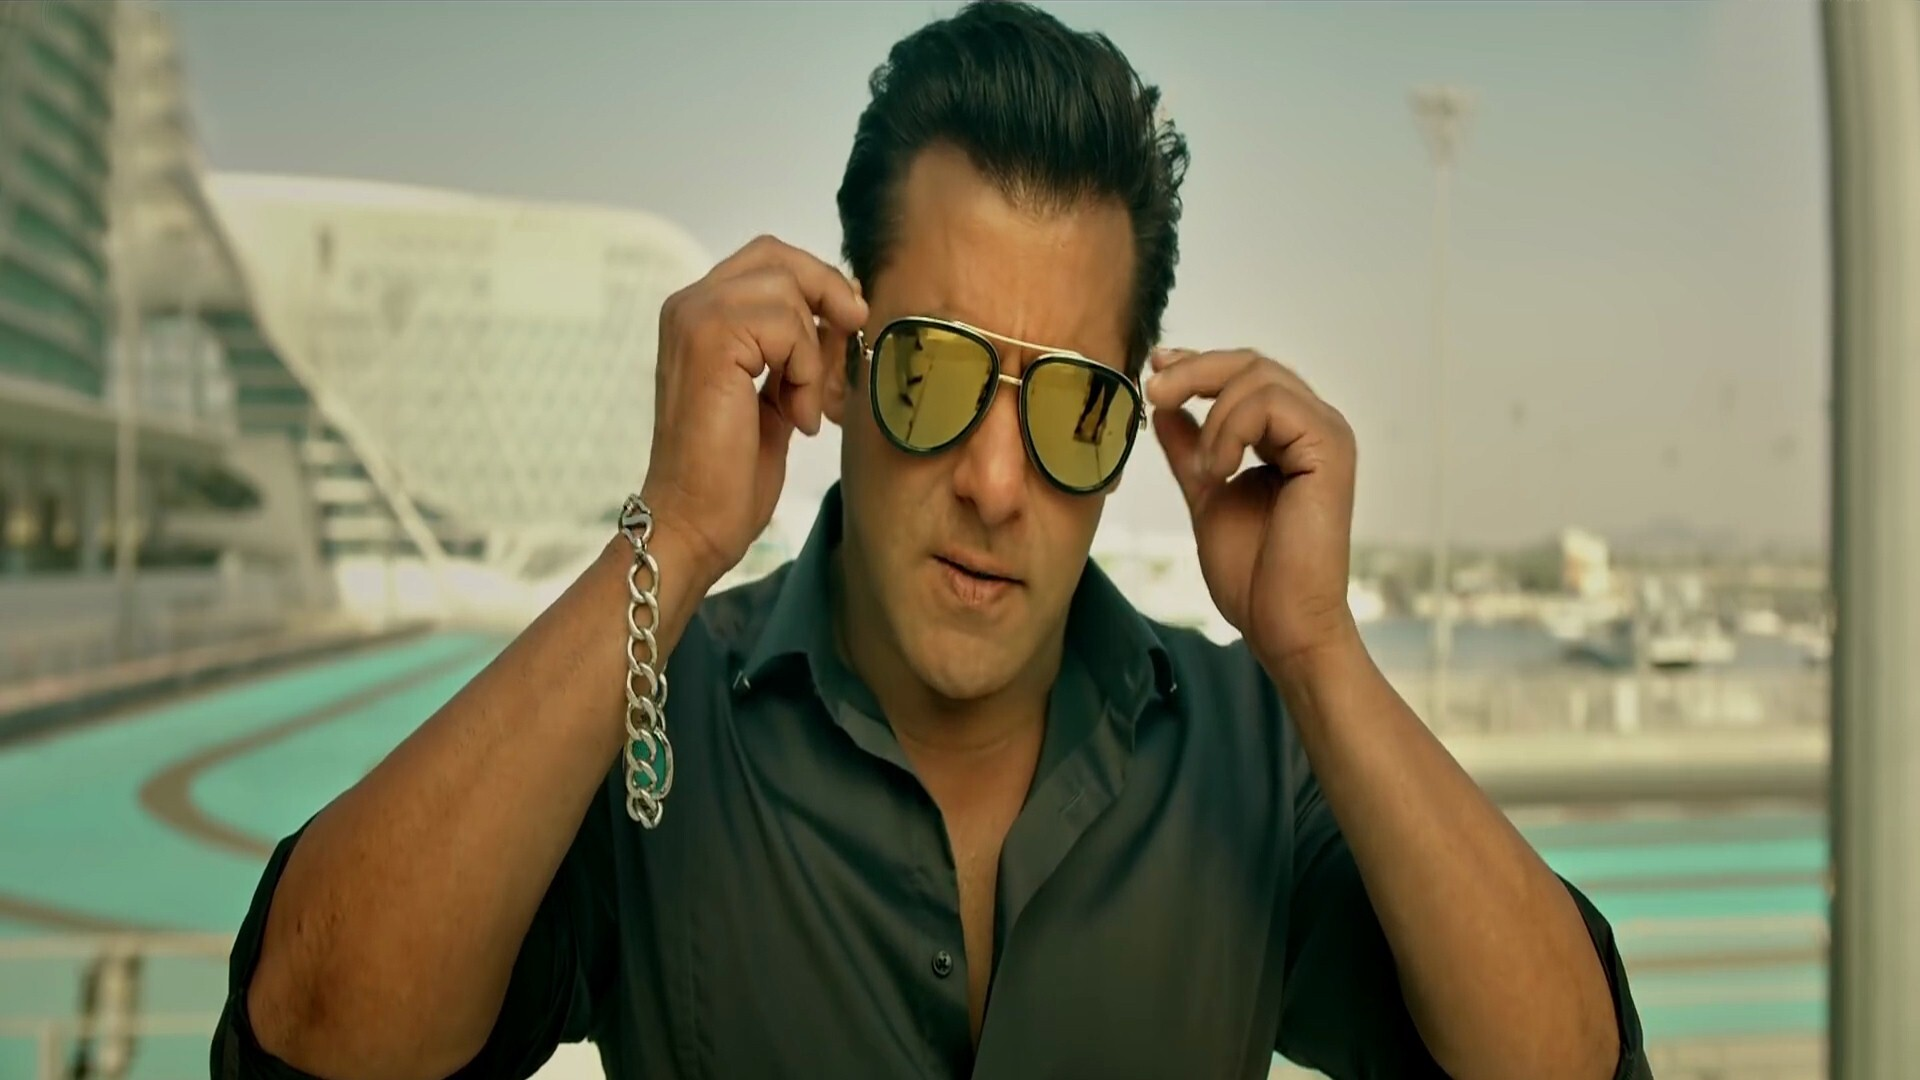 Salman Khan In Race 3 Movie Hd Wallpapers Hd Wallpapers